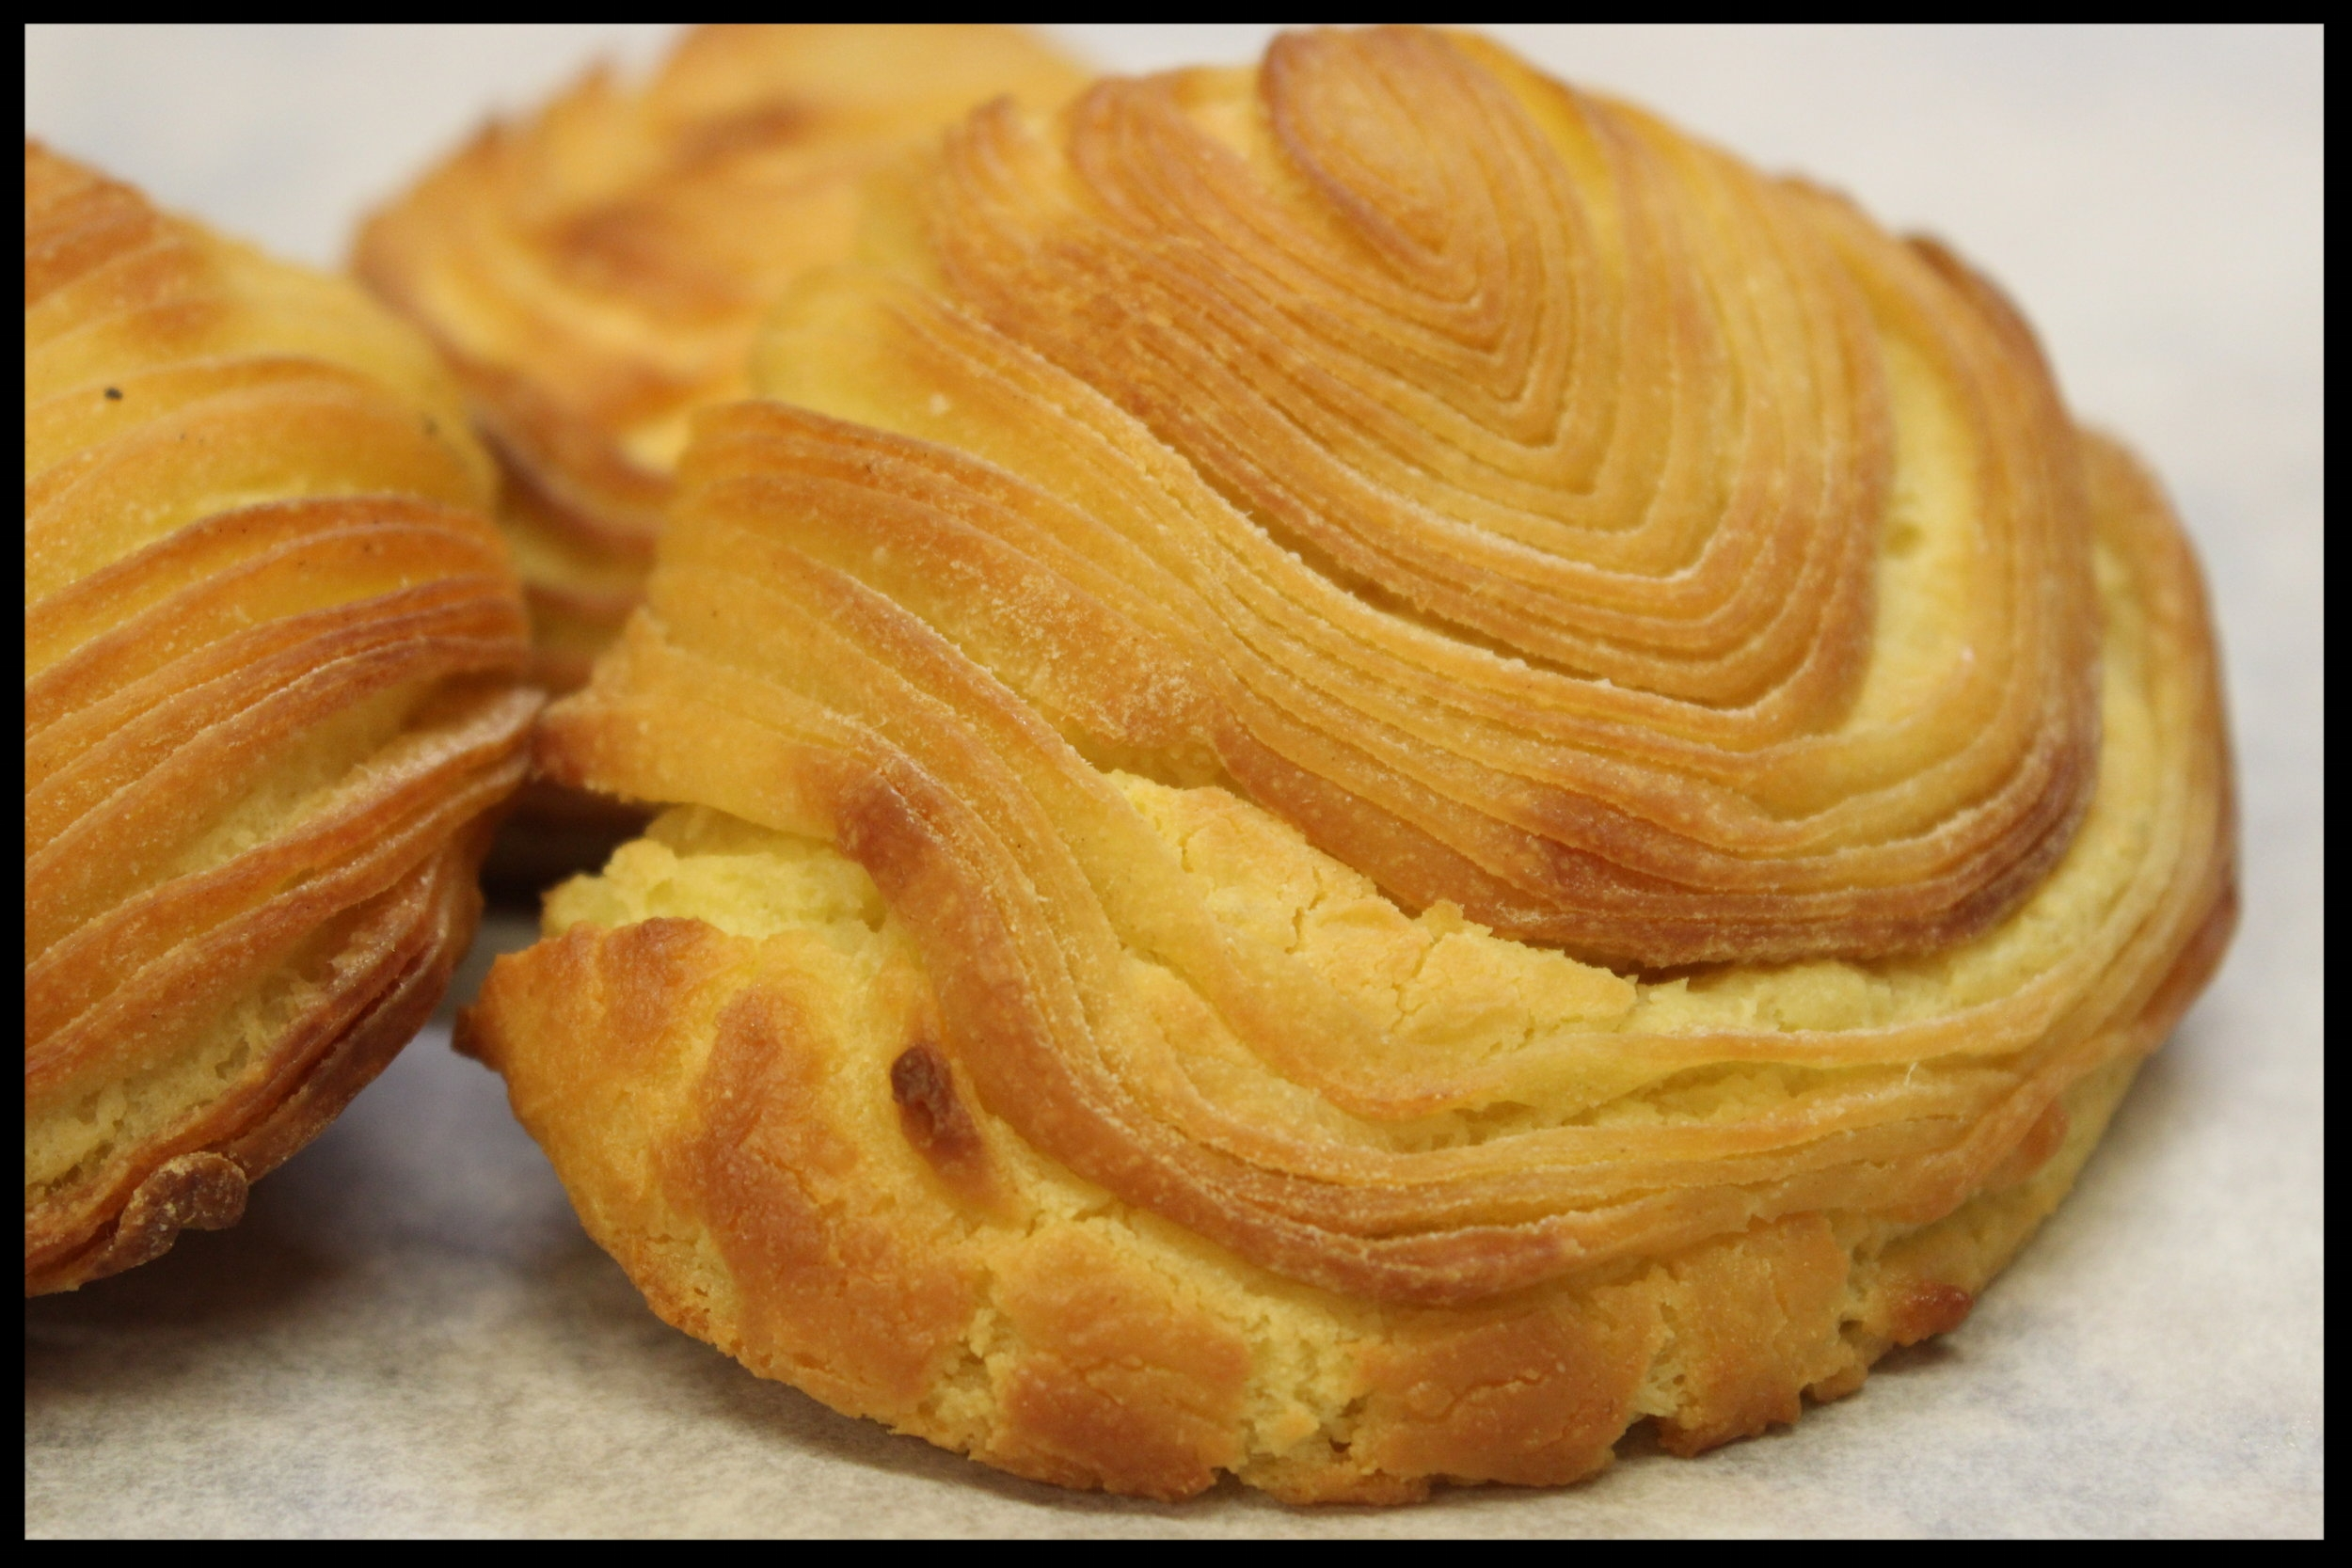 Sfogliatelle - A cheesy dough made with semolina and ricotta, wrapped in a crispy shell. Say it with me